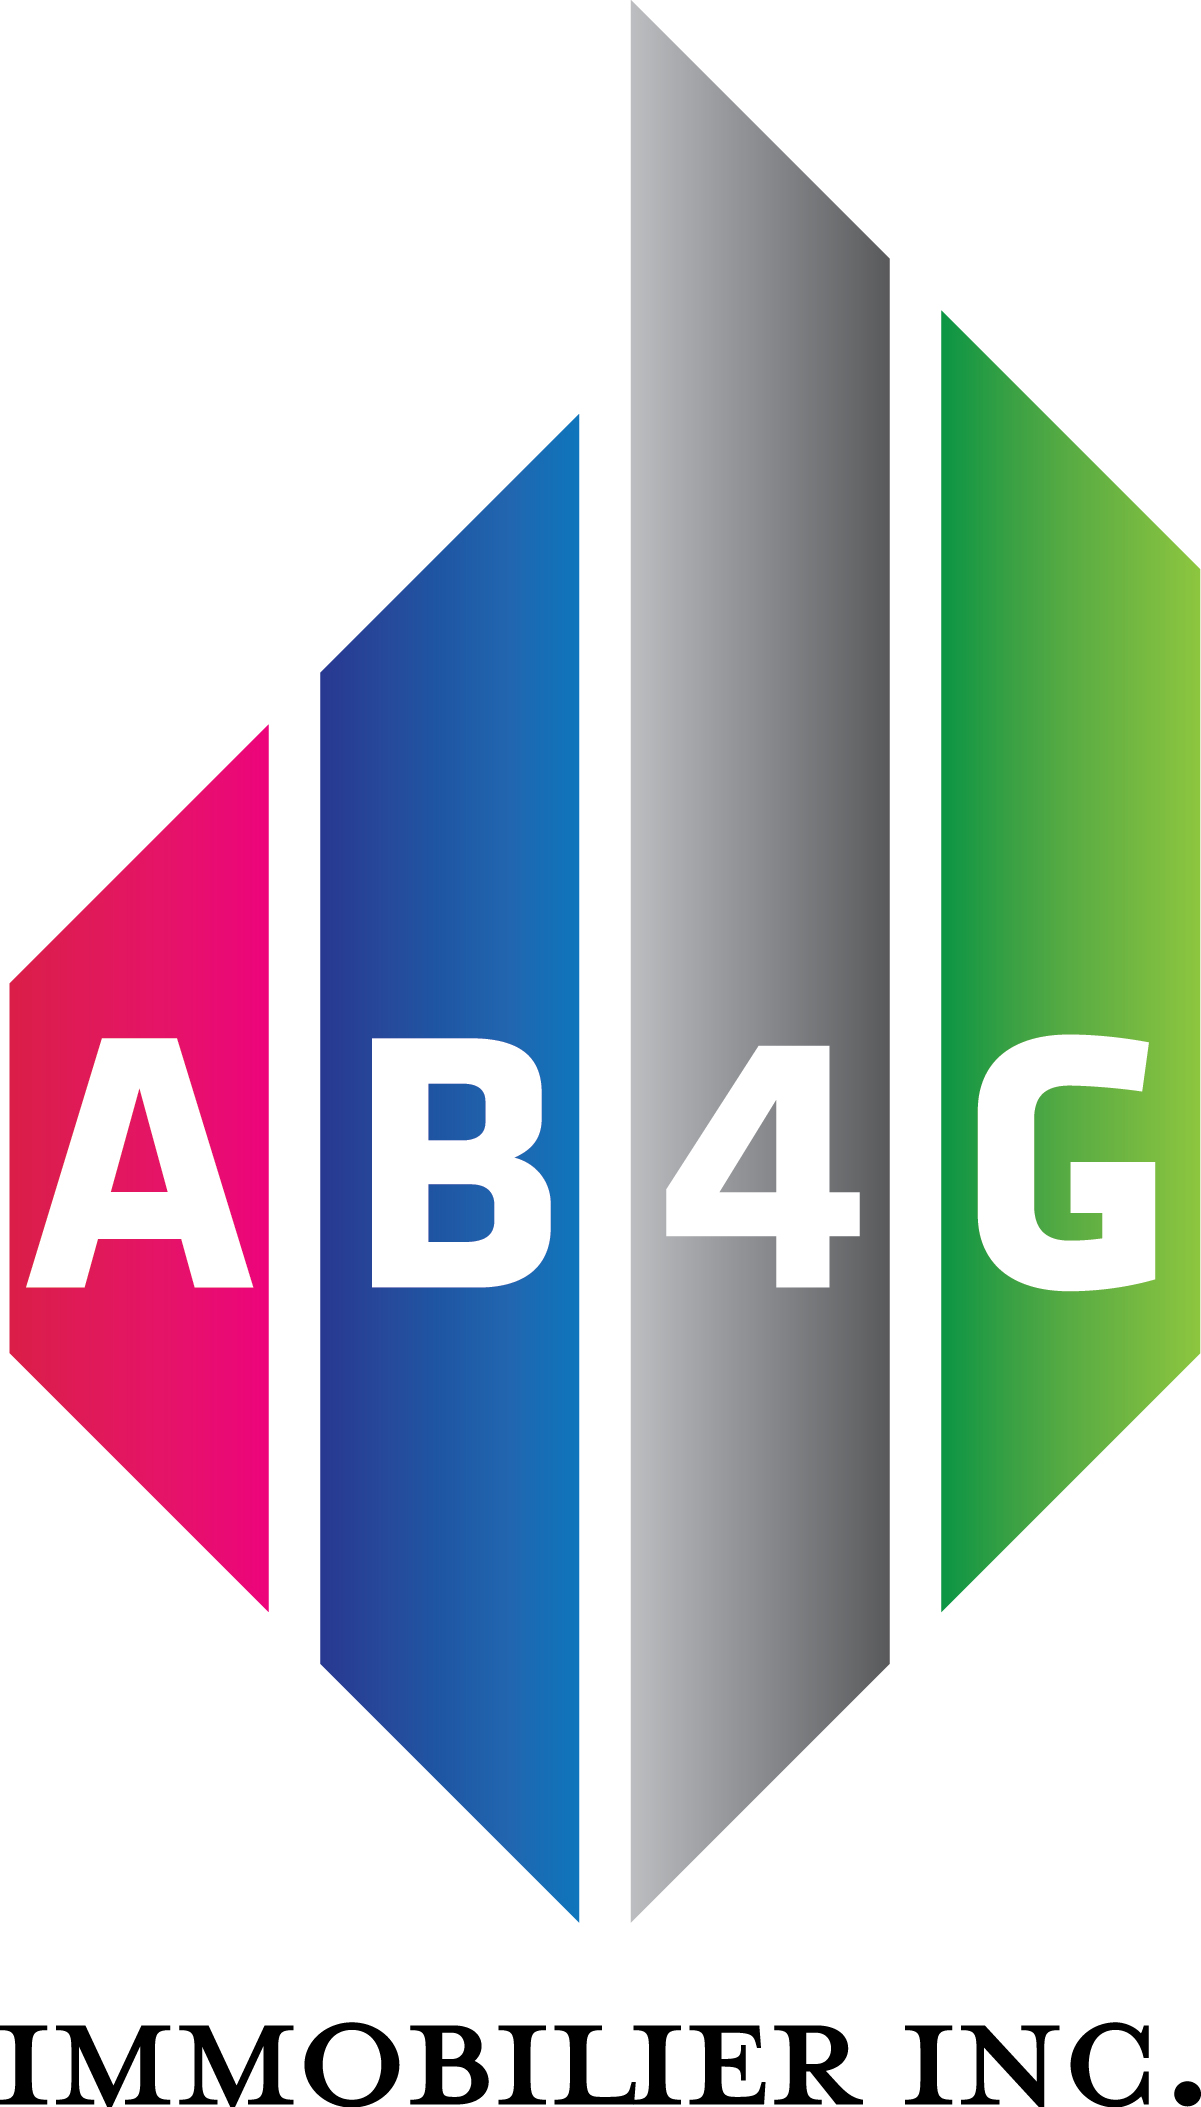 AB4G IMMOBILIER INC.